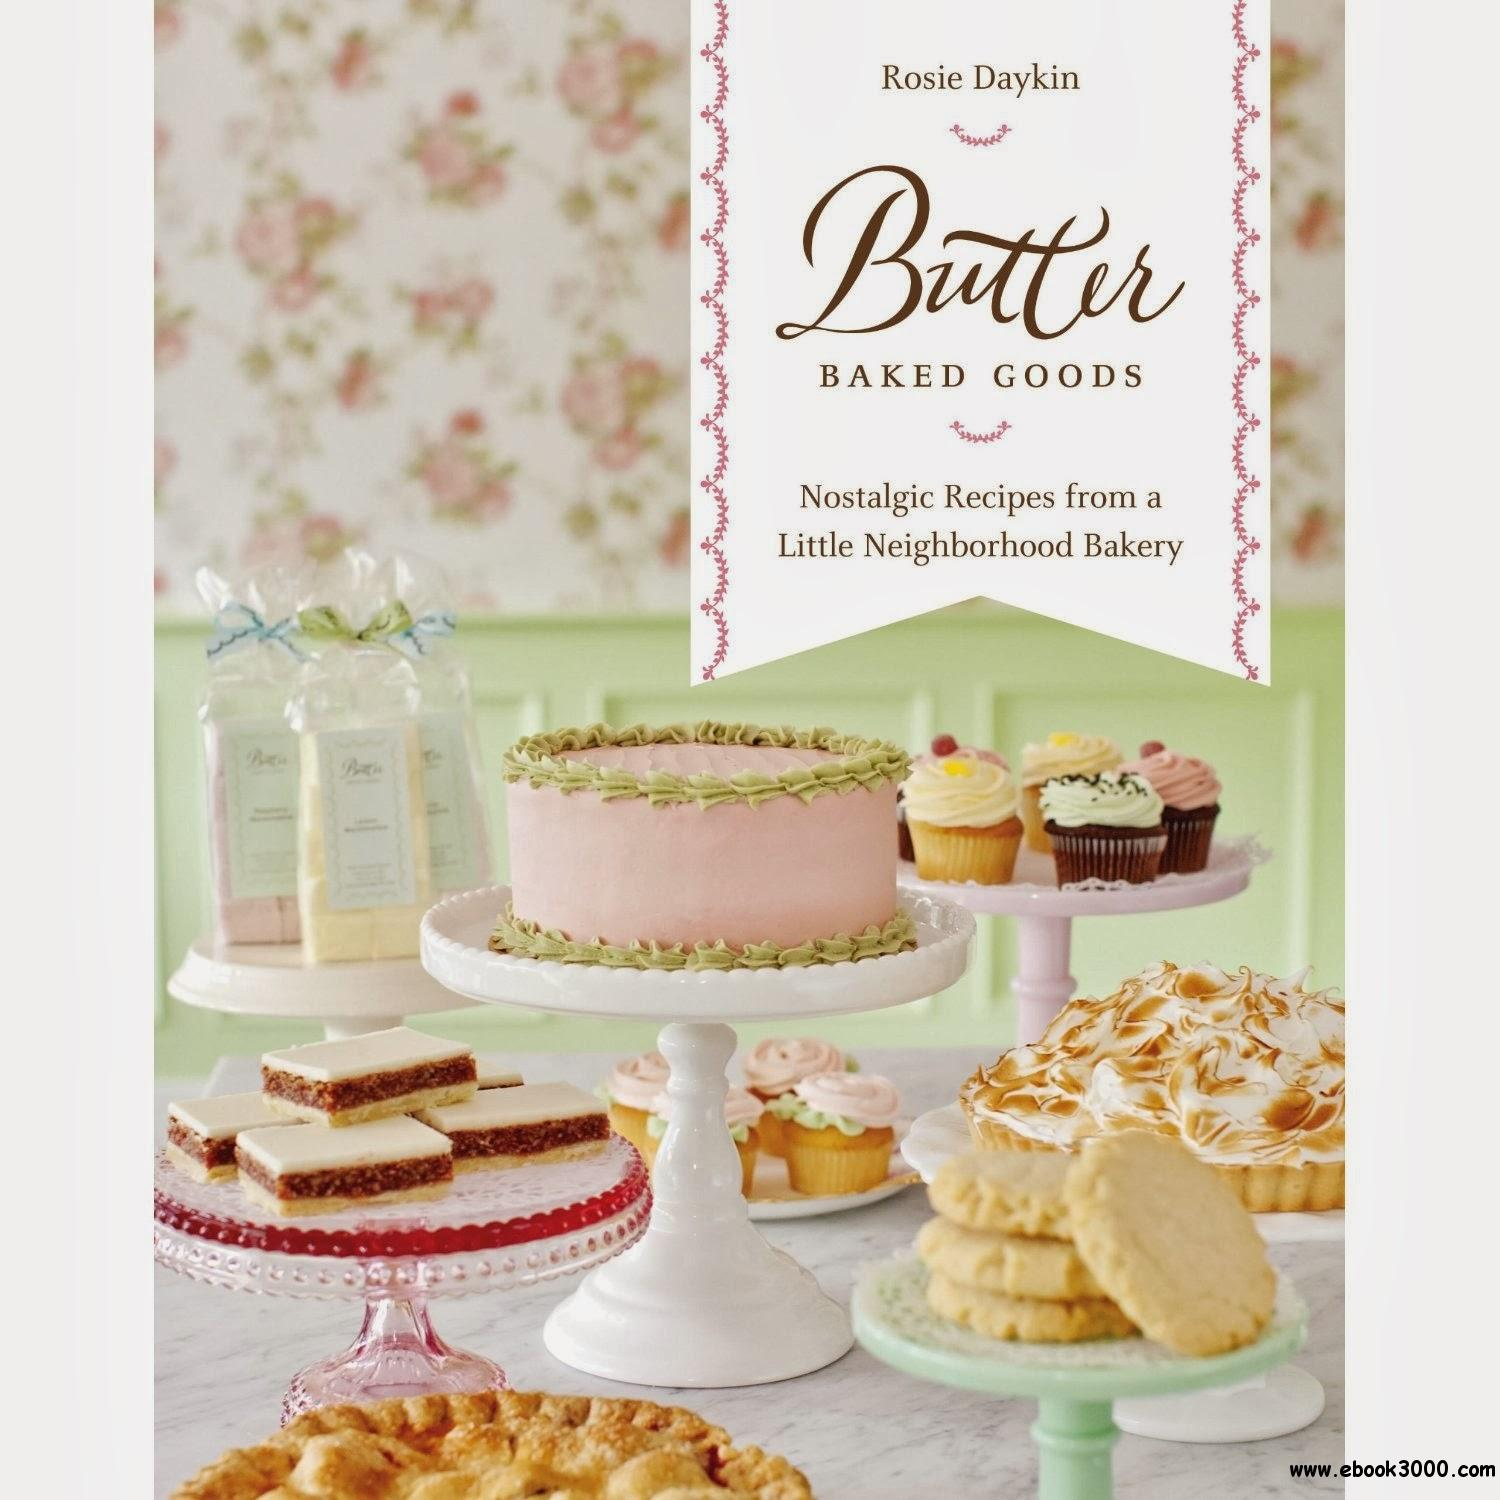 Butter Baked Goods: Nostalgic Recipes From a Little Neighborhood Bakery download dree